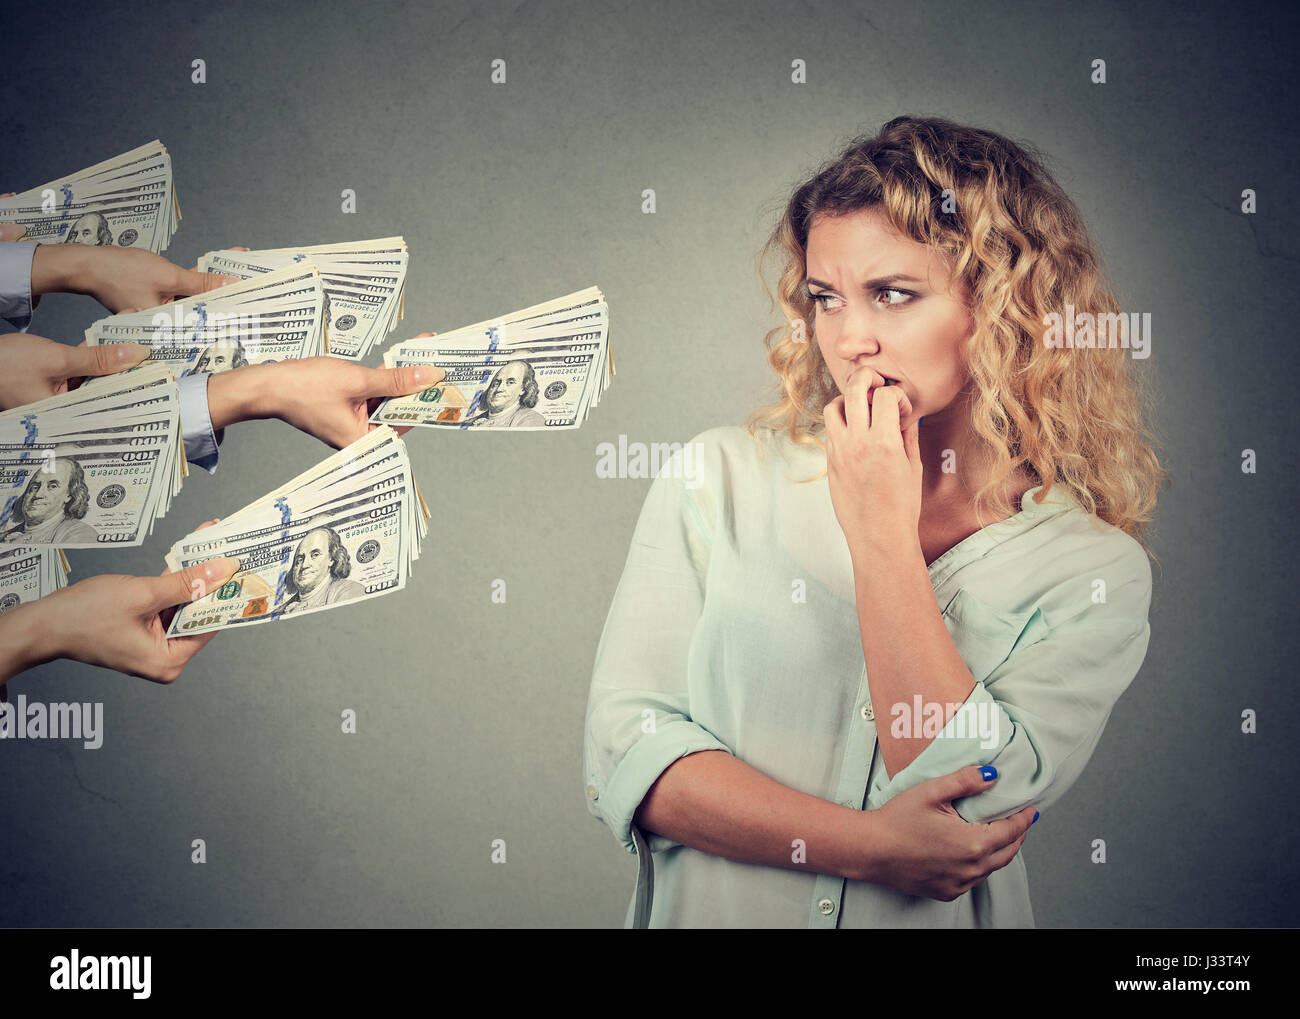 Woman hesitant to take bribe from people - Stock Image